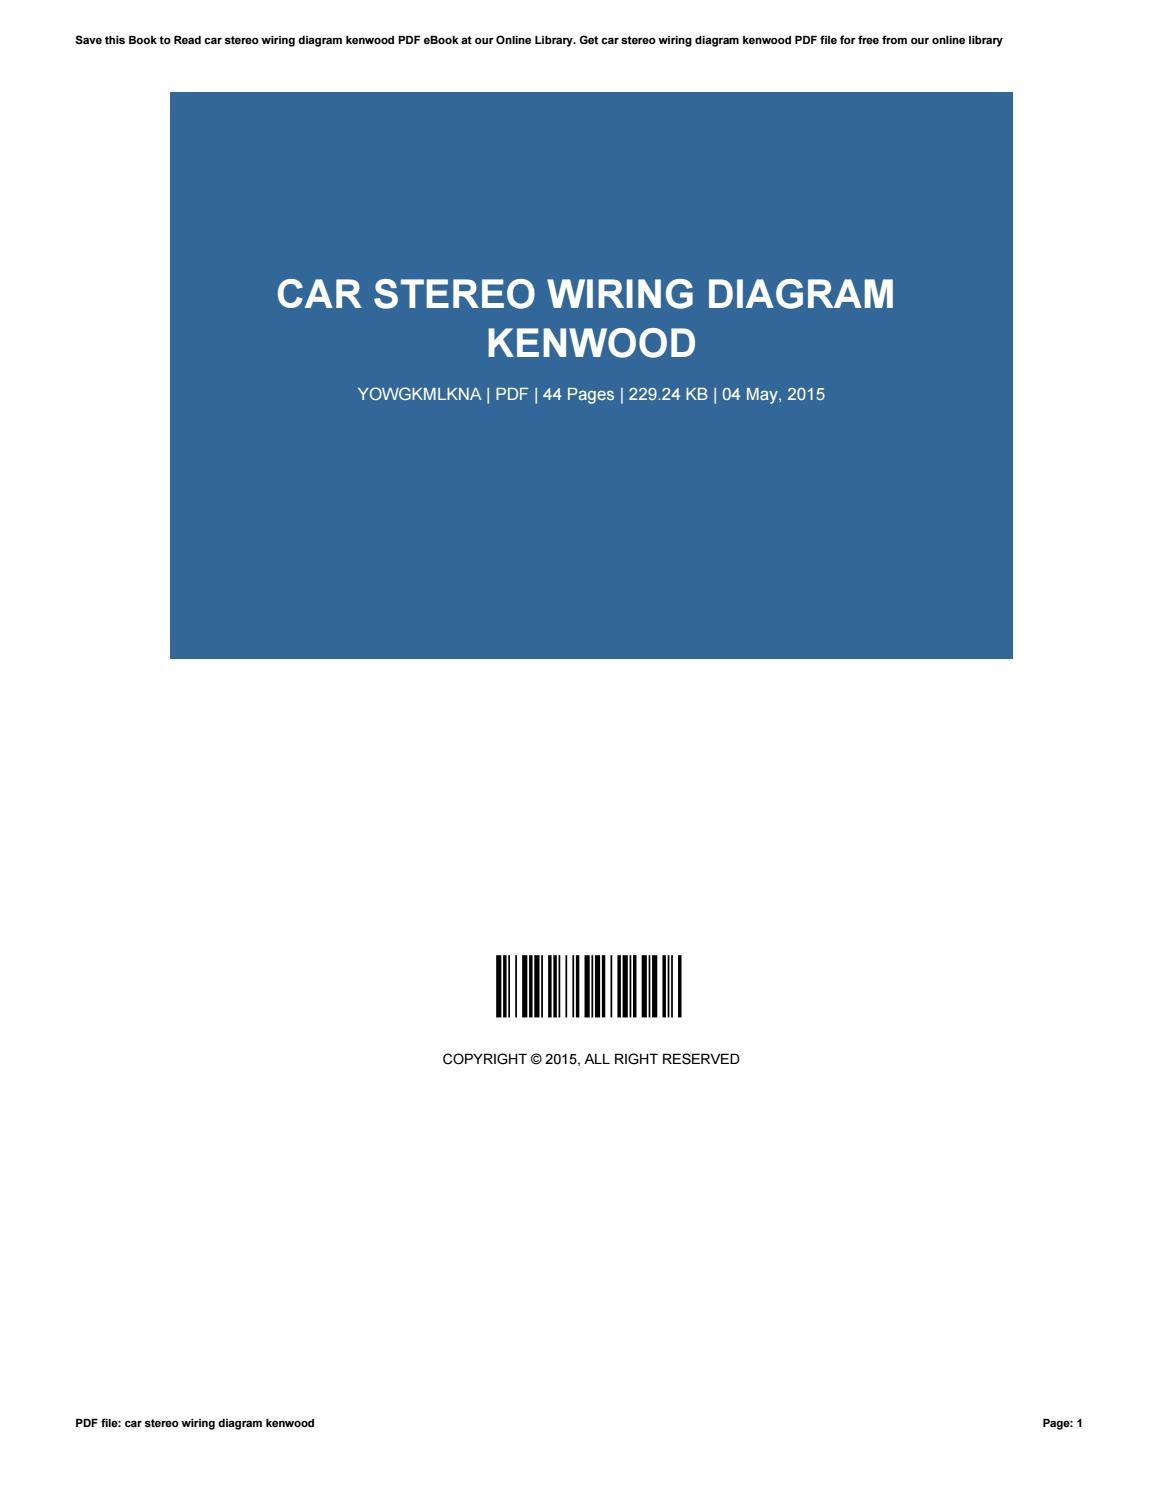 Car Stereo Wiring Diagram Kenwood By Patriciavallejo3376 Issuu